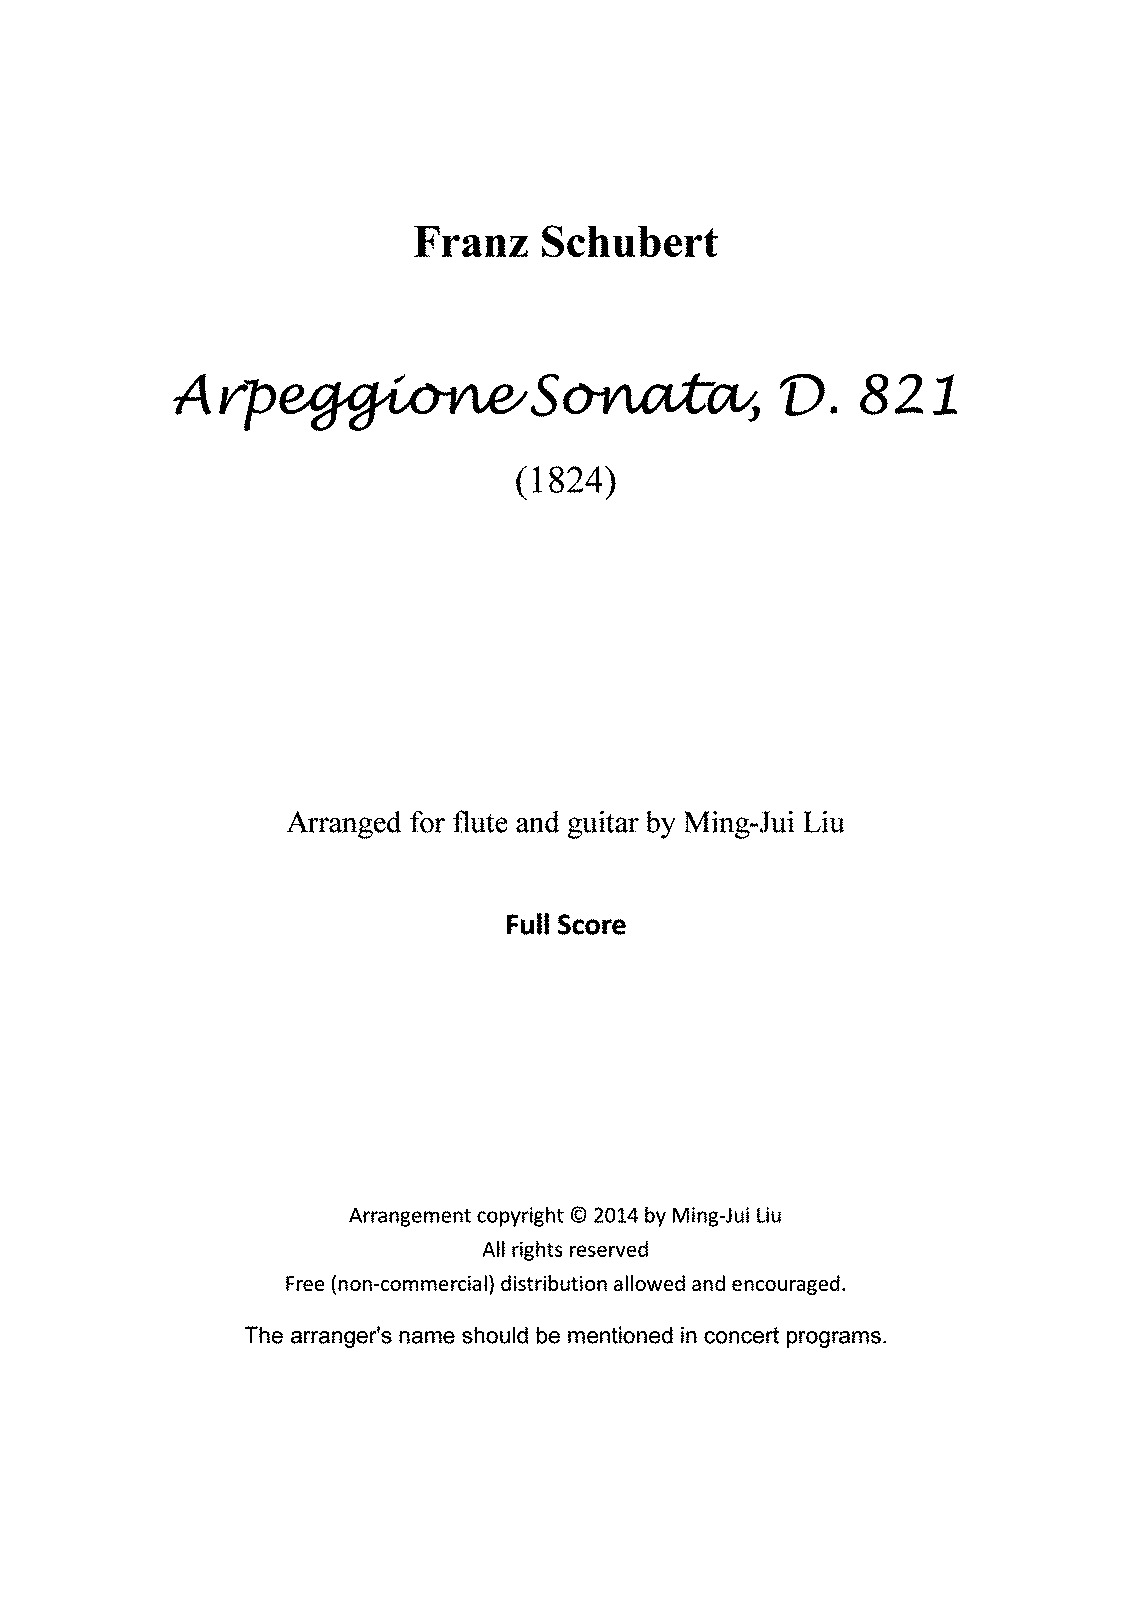 PMLP39828-Schubert Arpeggione Sonate for flute and guitar, arr. Ming-Jui Liu Full Score.pdf